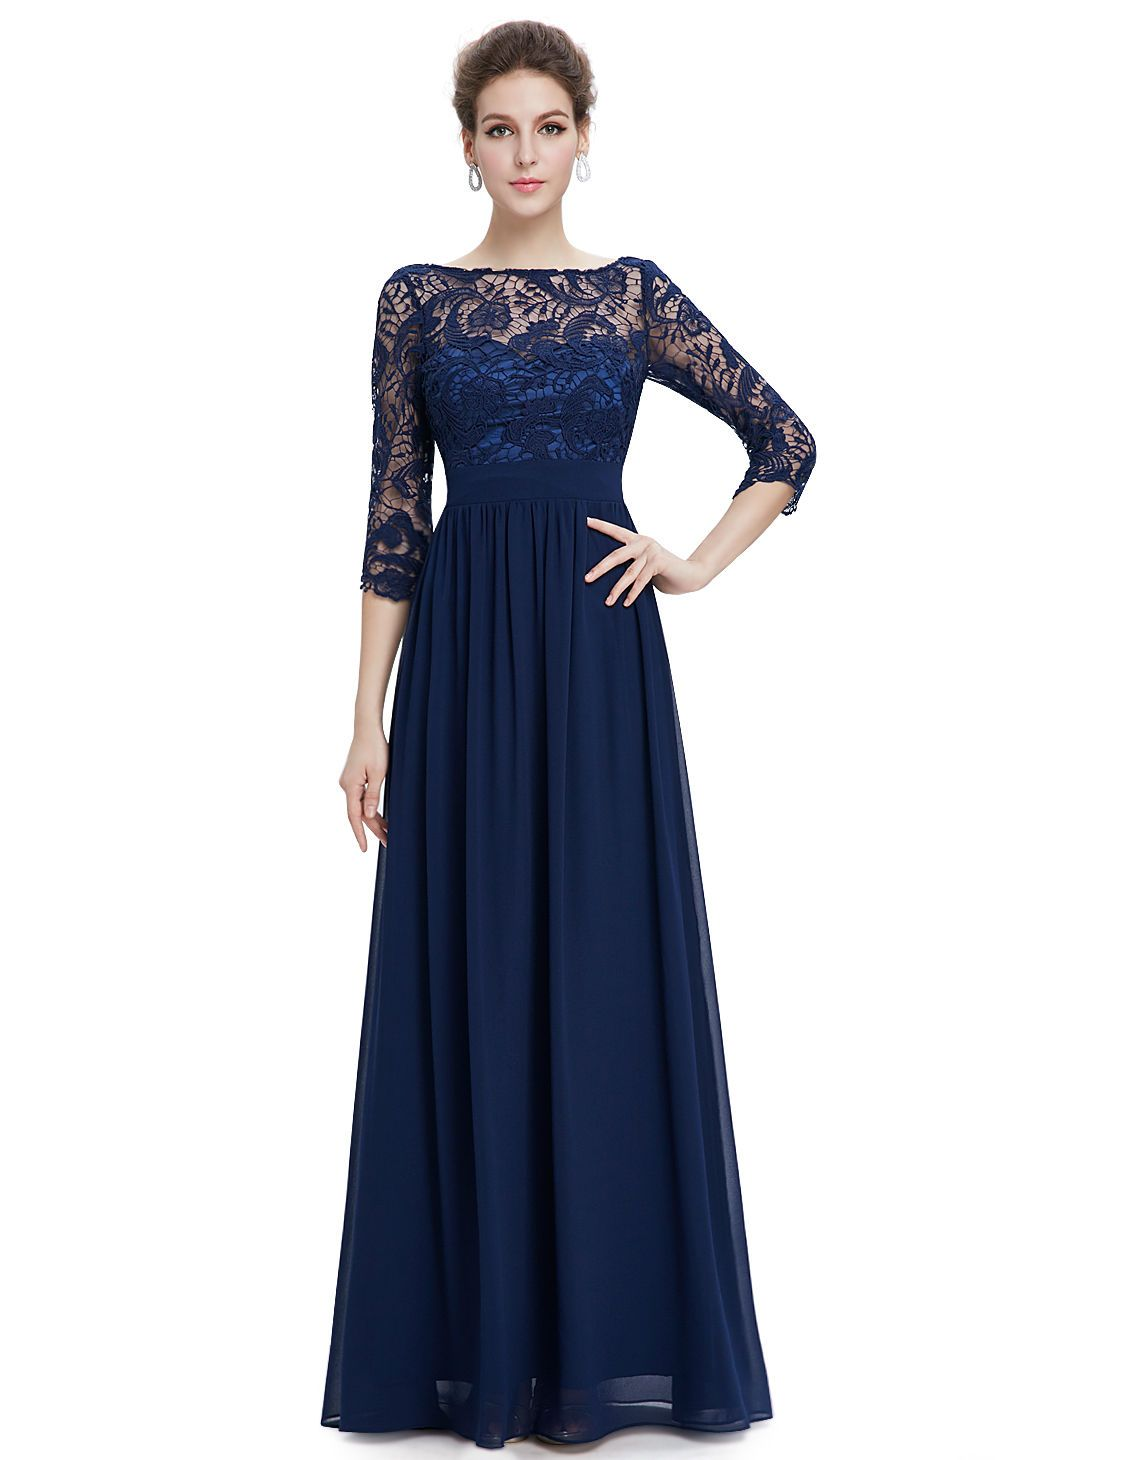 Women S 3 4 Sleeve Chiffon Long Prom Bridesmaid Party Wedding Evening Gown Dress Blue Lace Dress Long Formal Evening Dresses Evening Dresses [ 1460 x 1125 Pixel ]